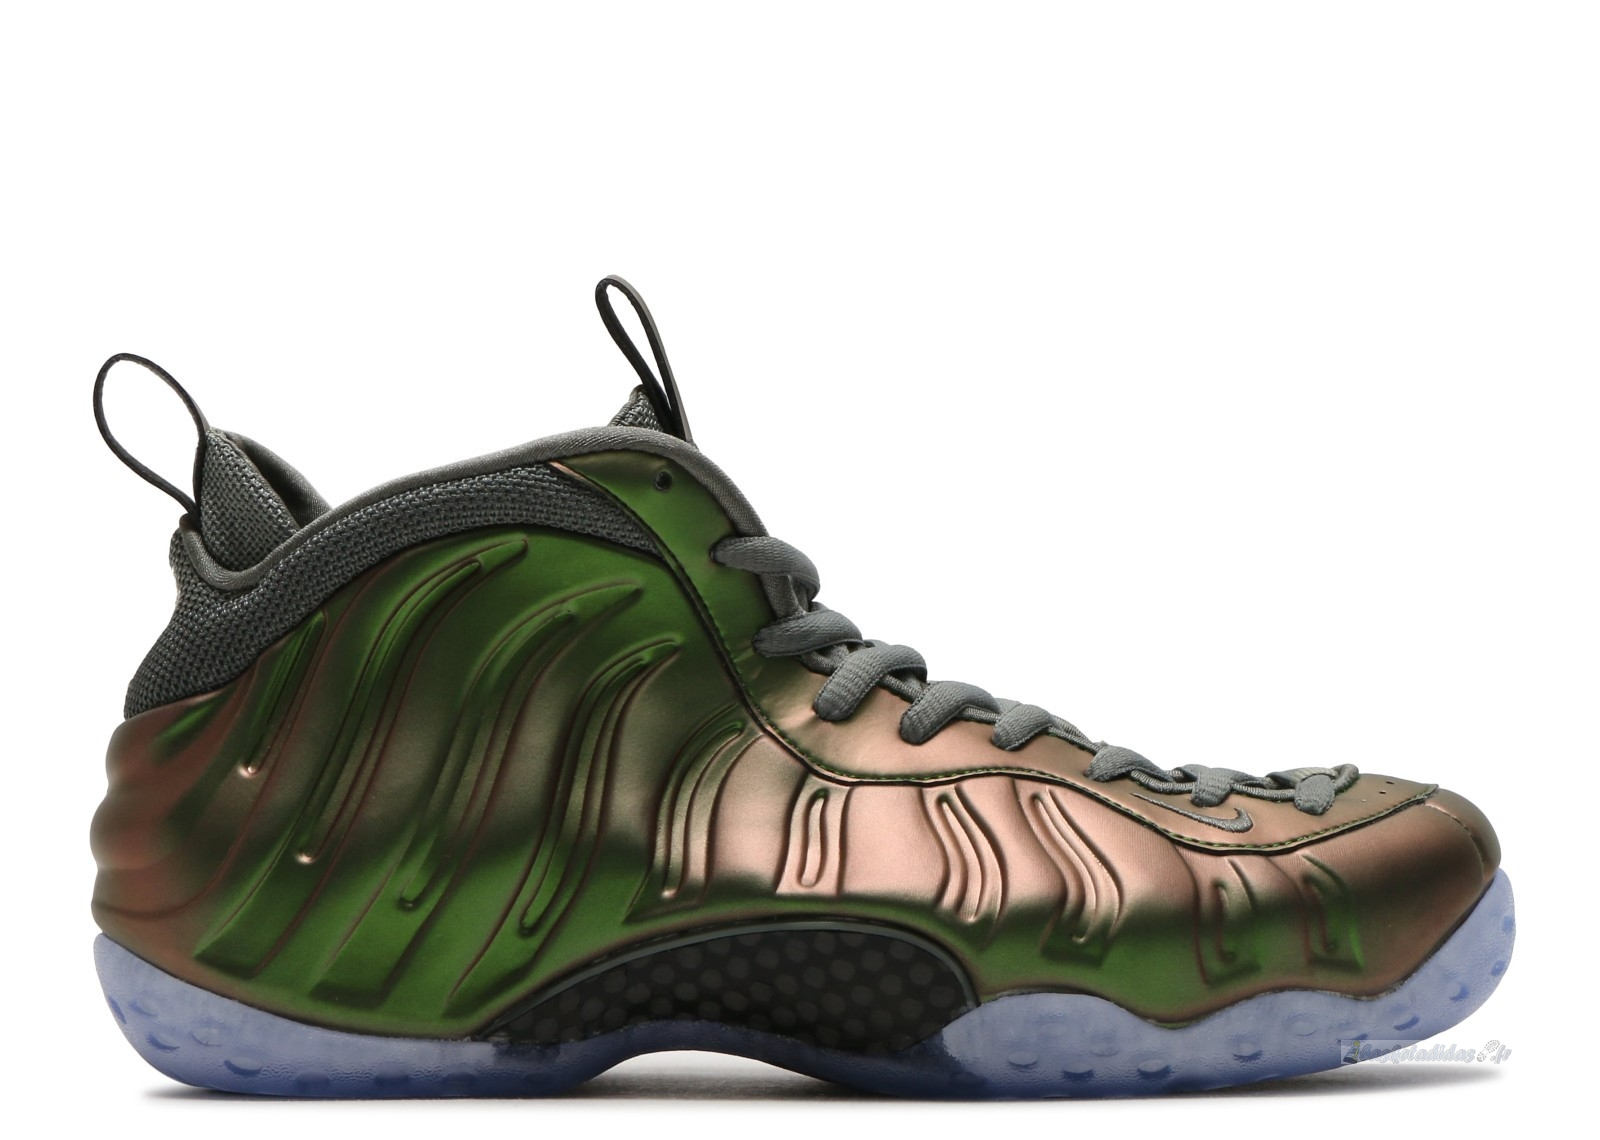 Chaussure de Basket Nike Air Foamposite One Femme Vert Or (aa3963-001)